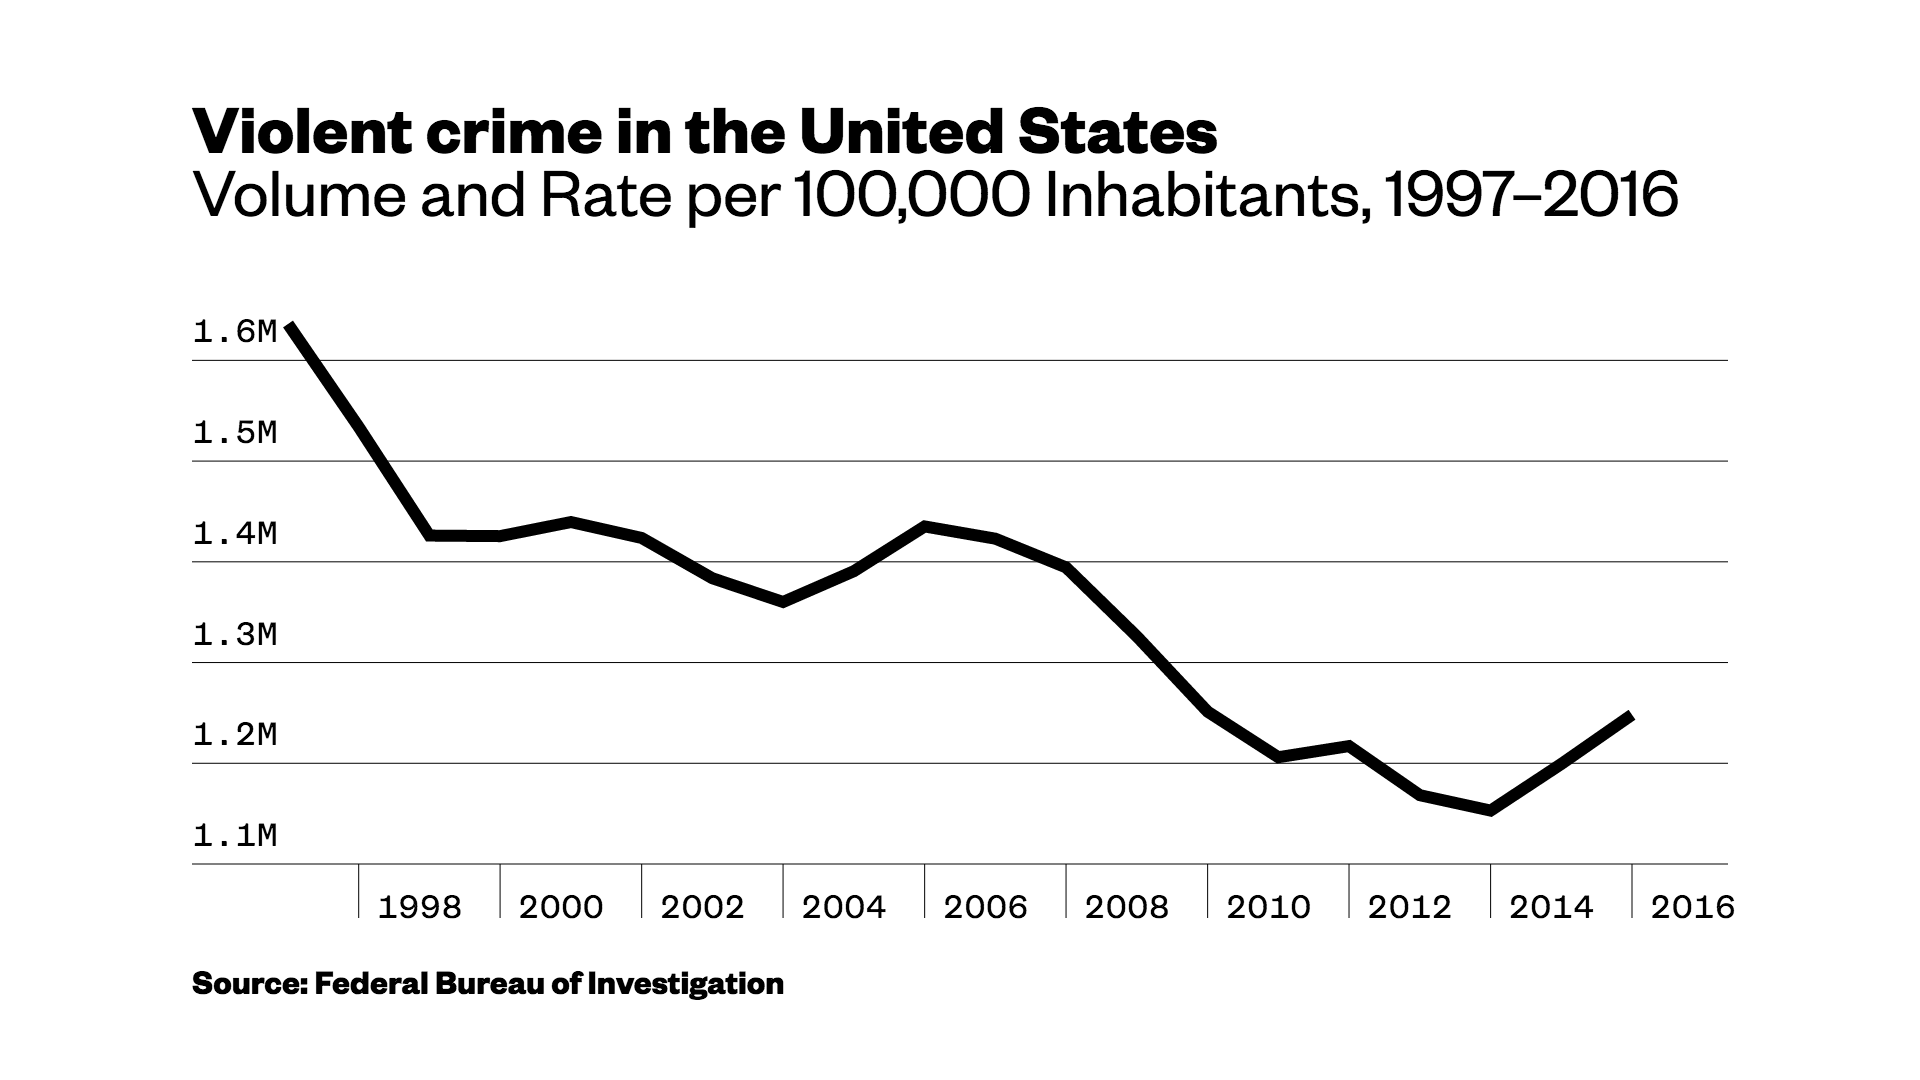 crime rate fluctuation The level of unemployment (criminal opportunity) is expected to be negatively associated with fluctuations in crime rates while the change in level of unemployment (crime motivation) is anticipated to be positively associated with fluctuations in crime rates.